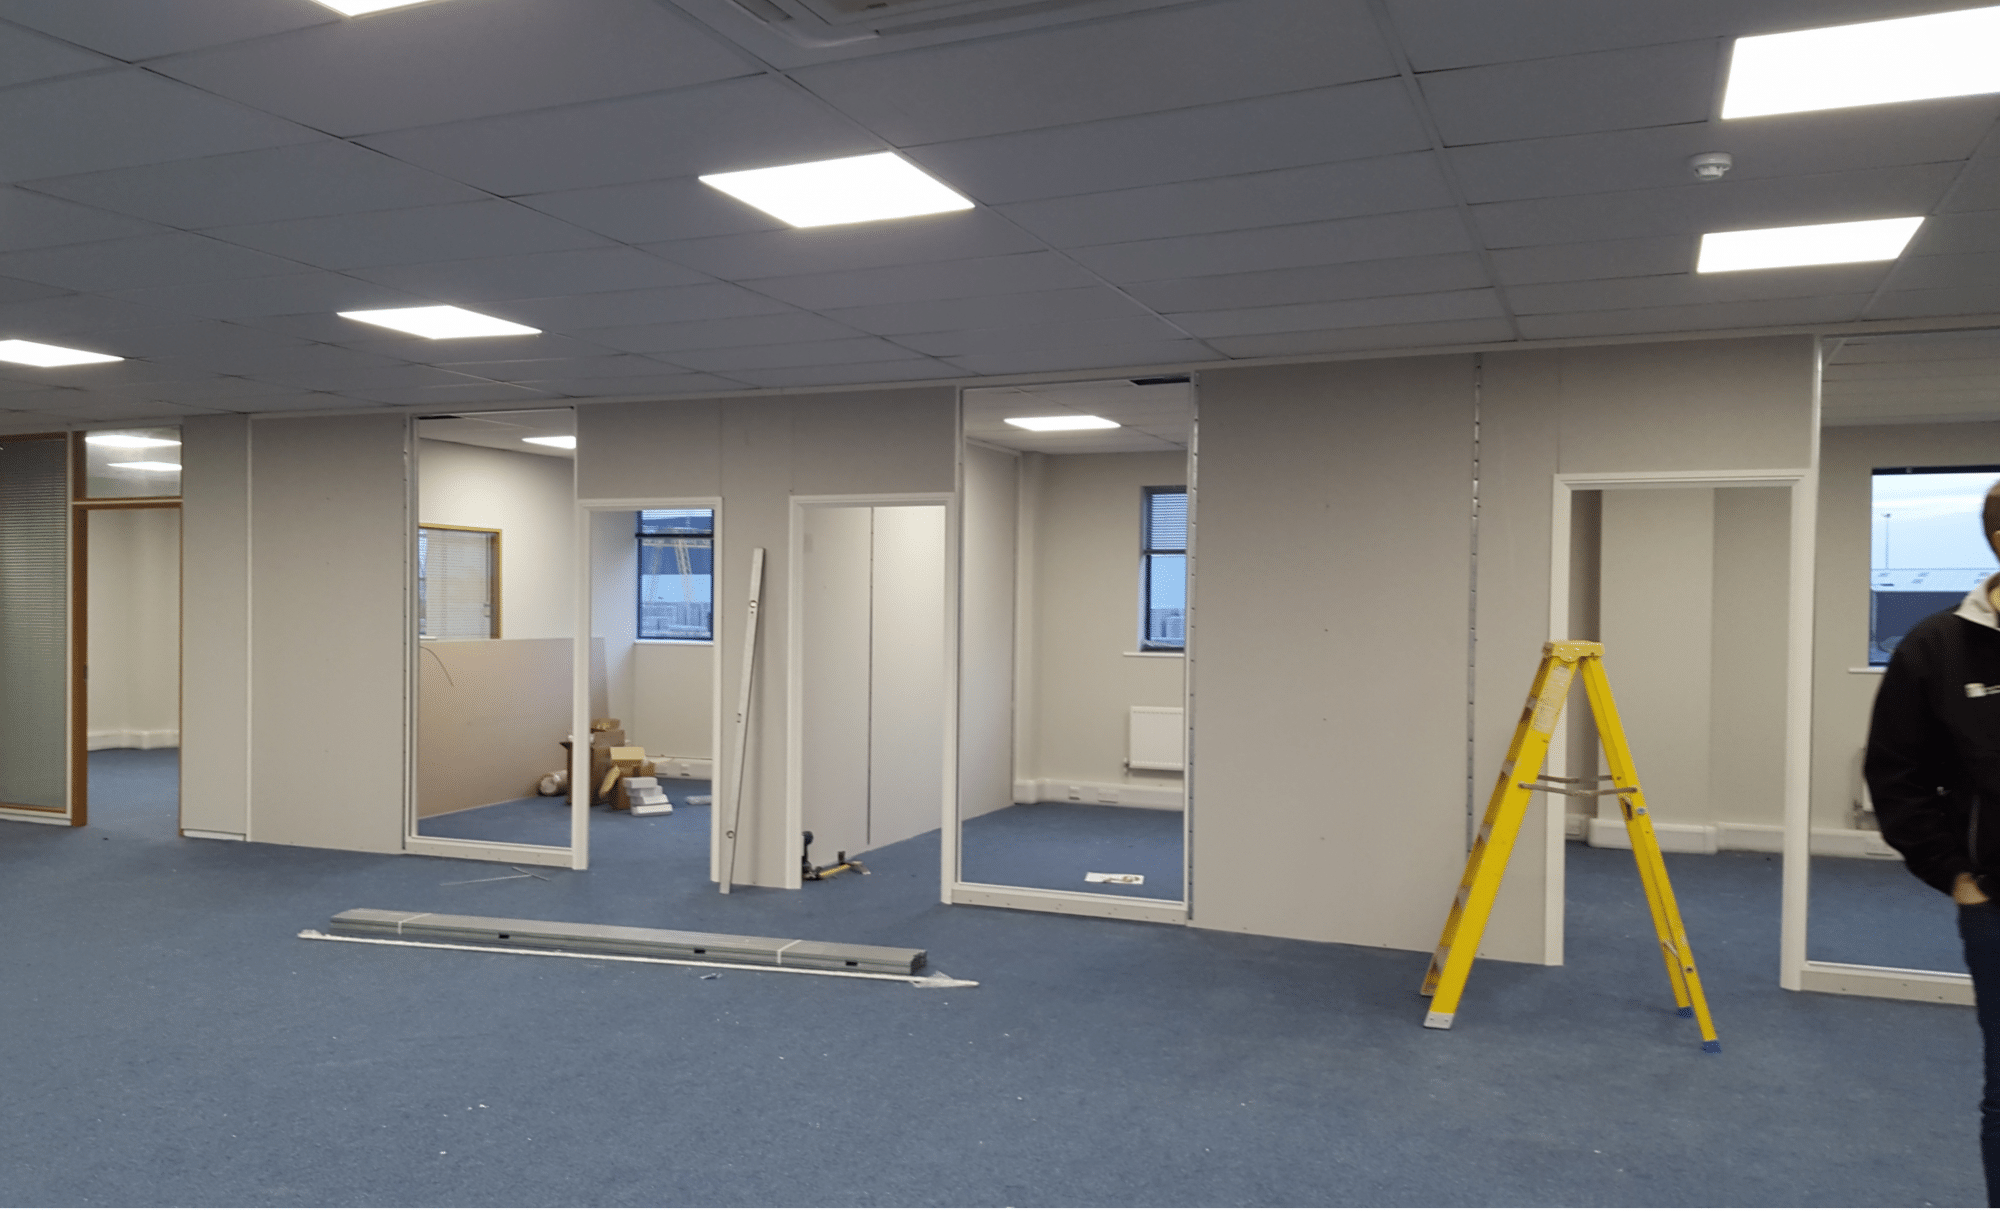 Office partitioning in progress